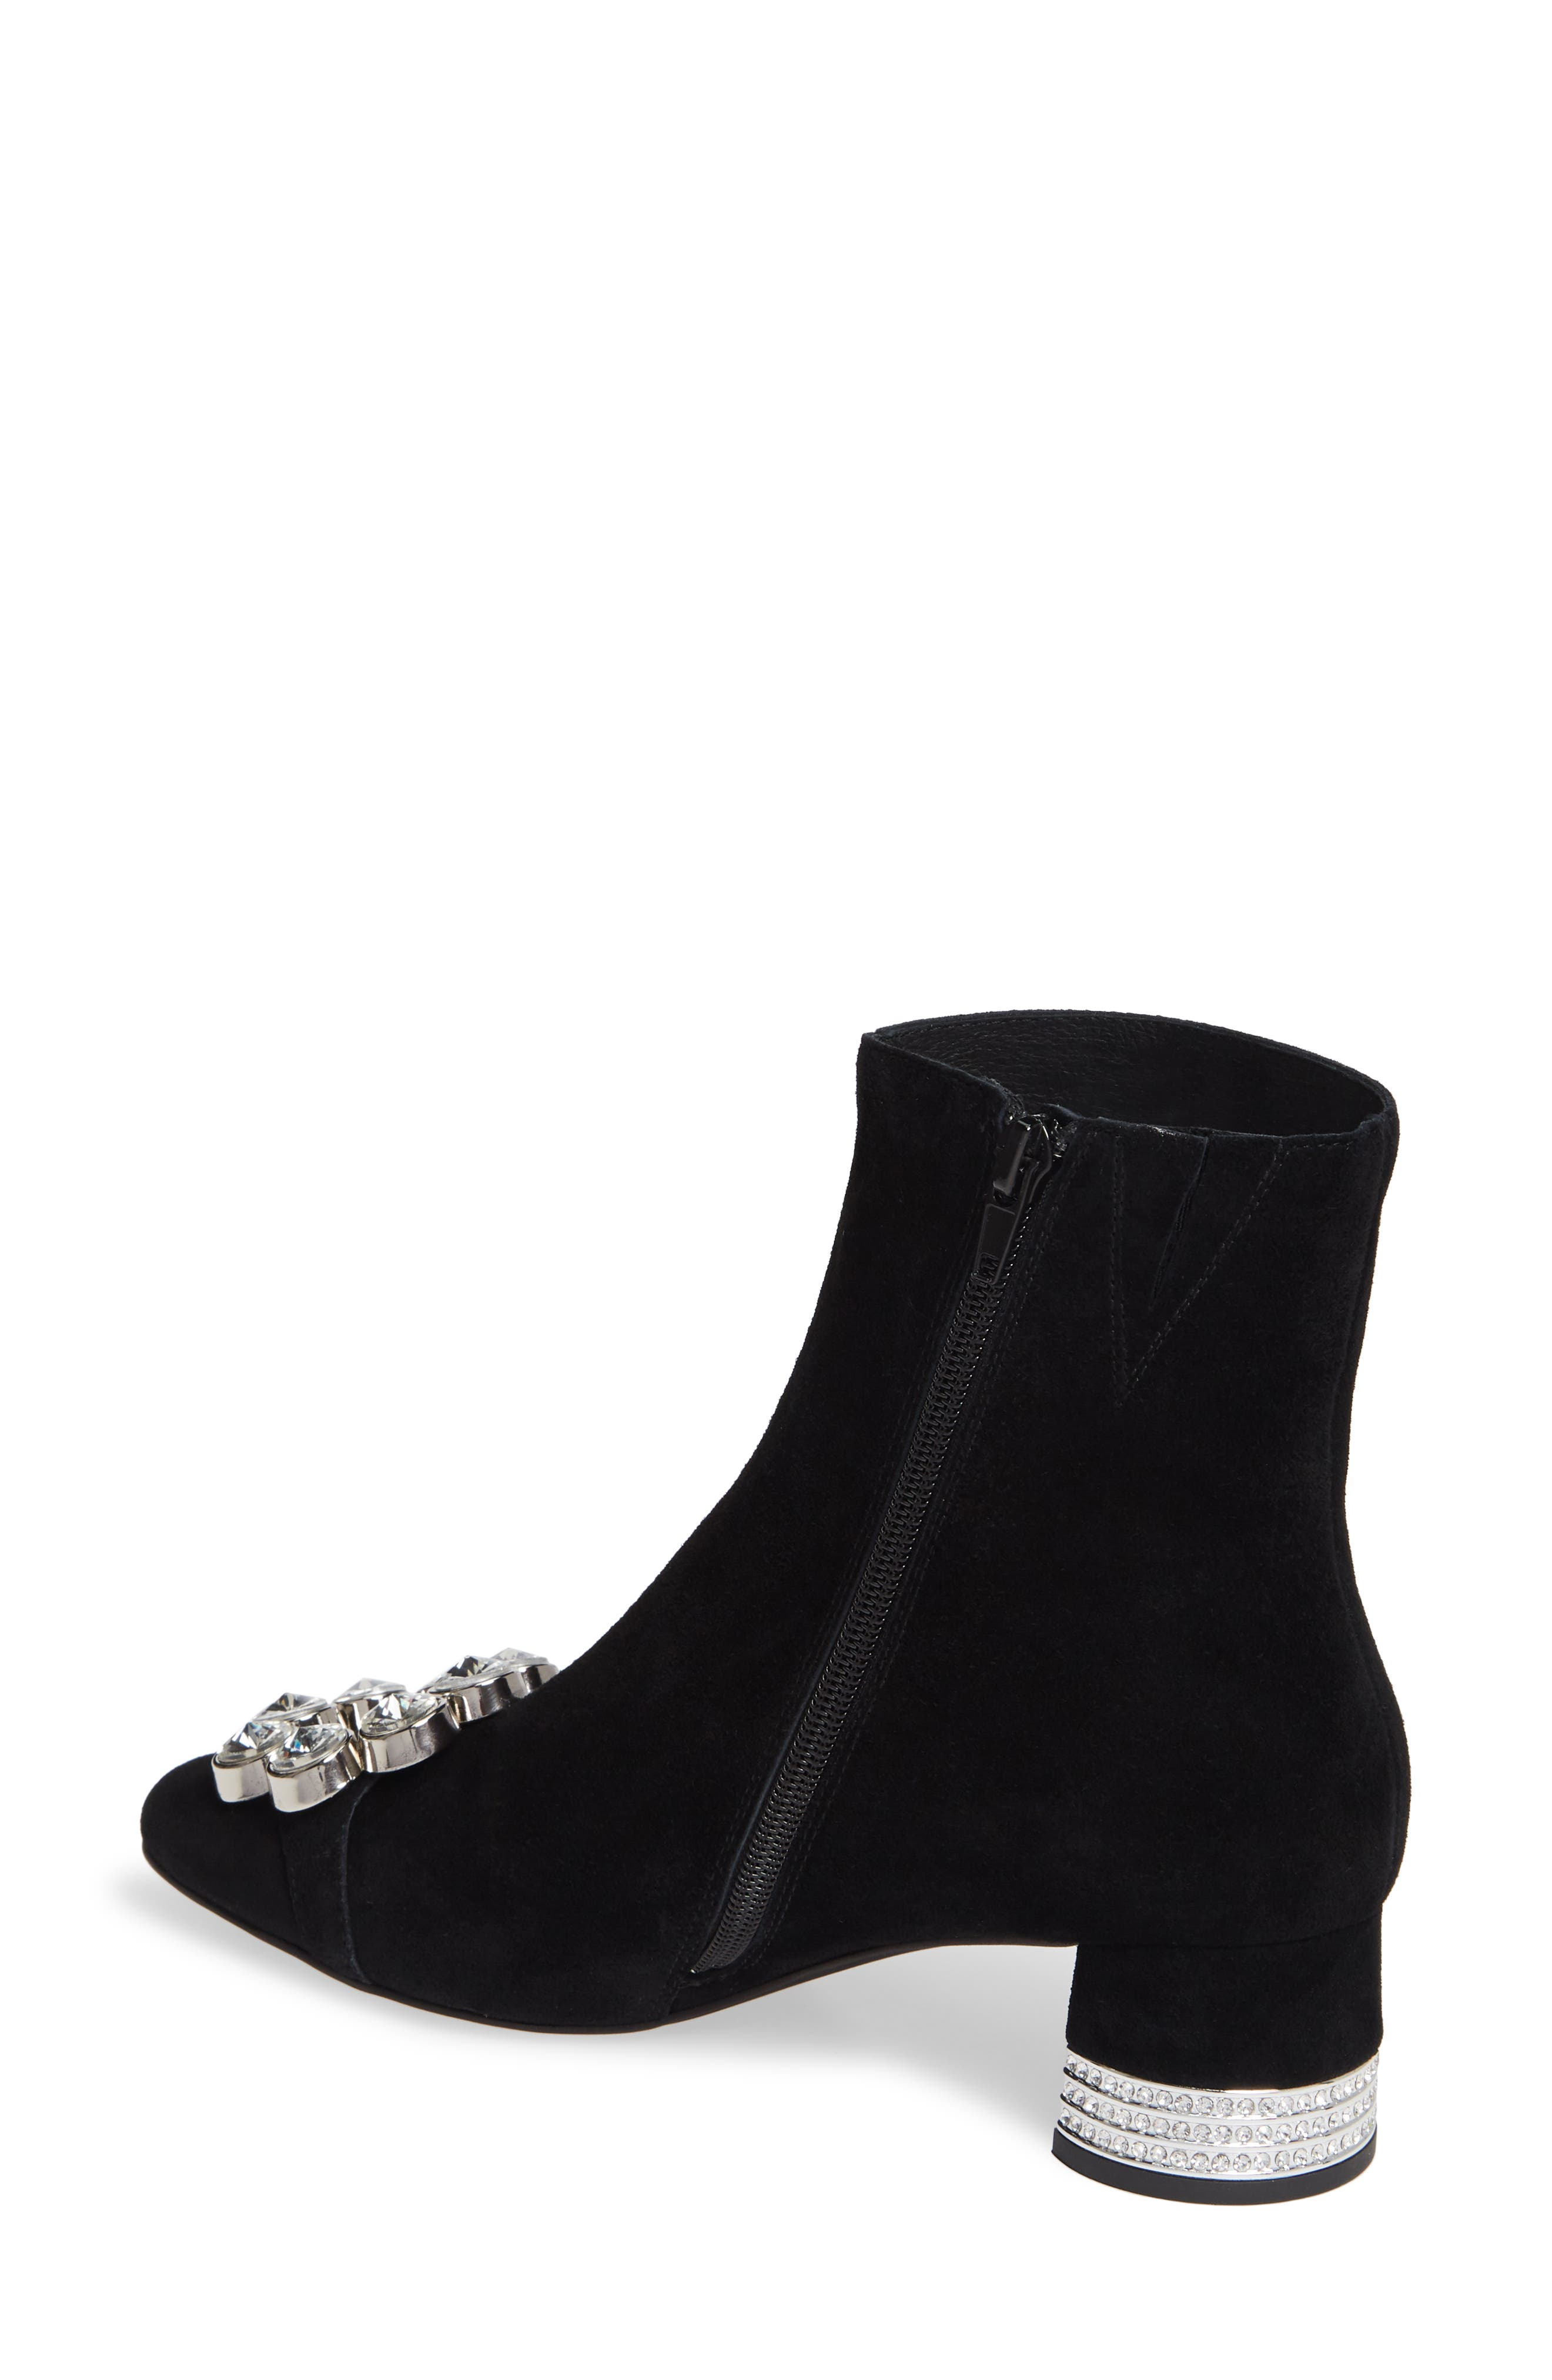 Sumatra Embellished Bootie,                             Alternate thumbnail 2, color,                             BLACK SUEDE